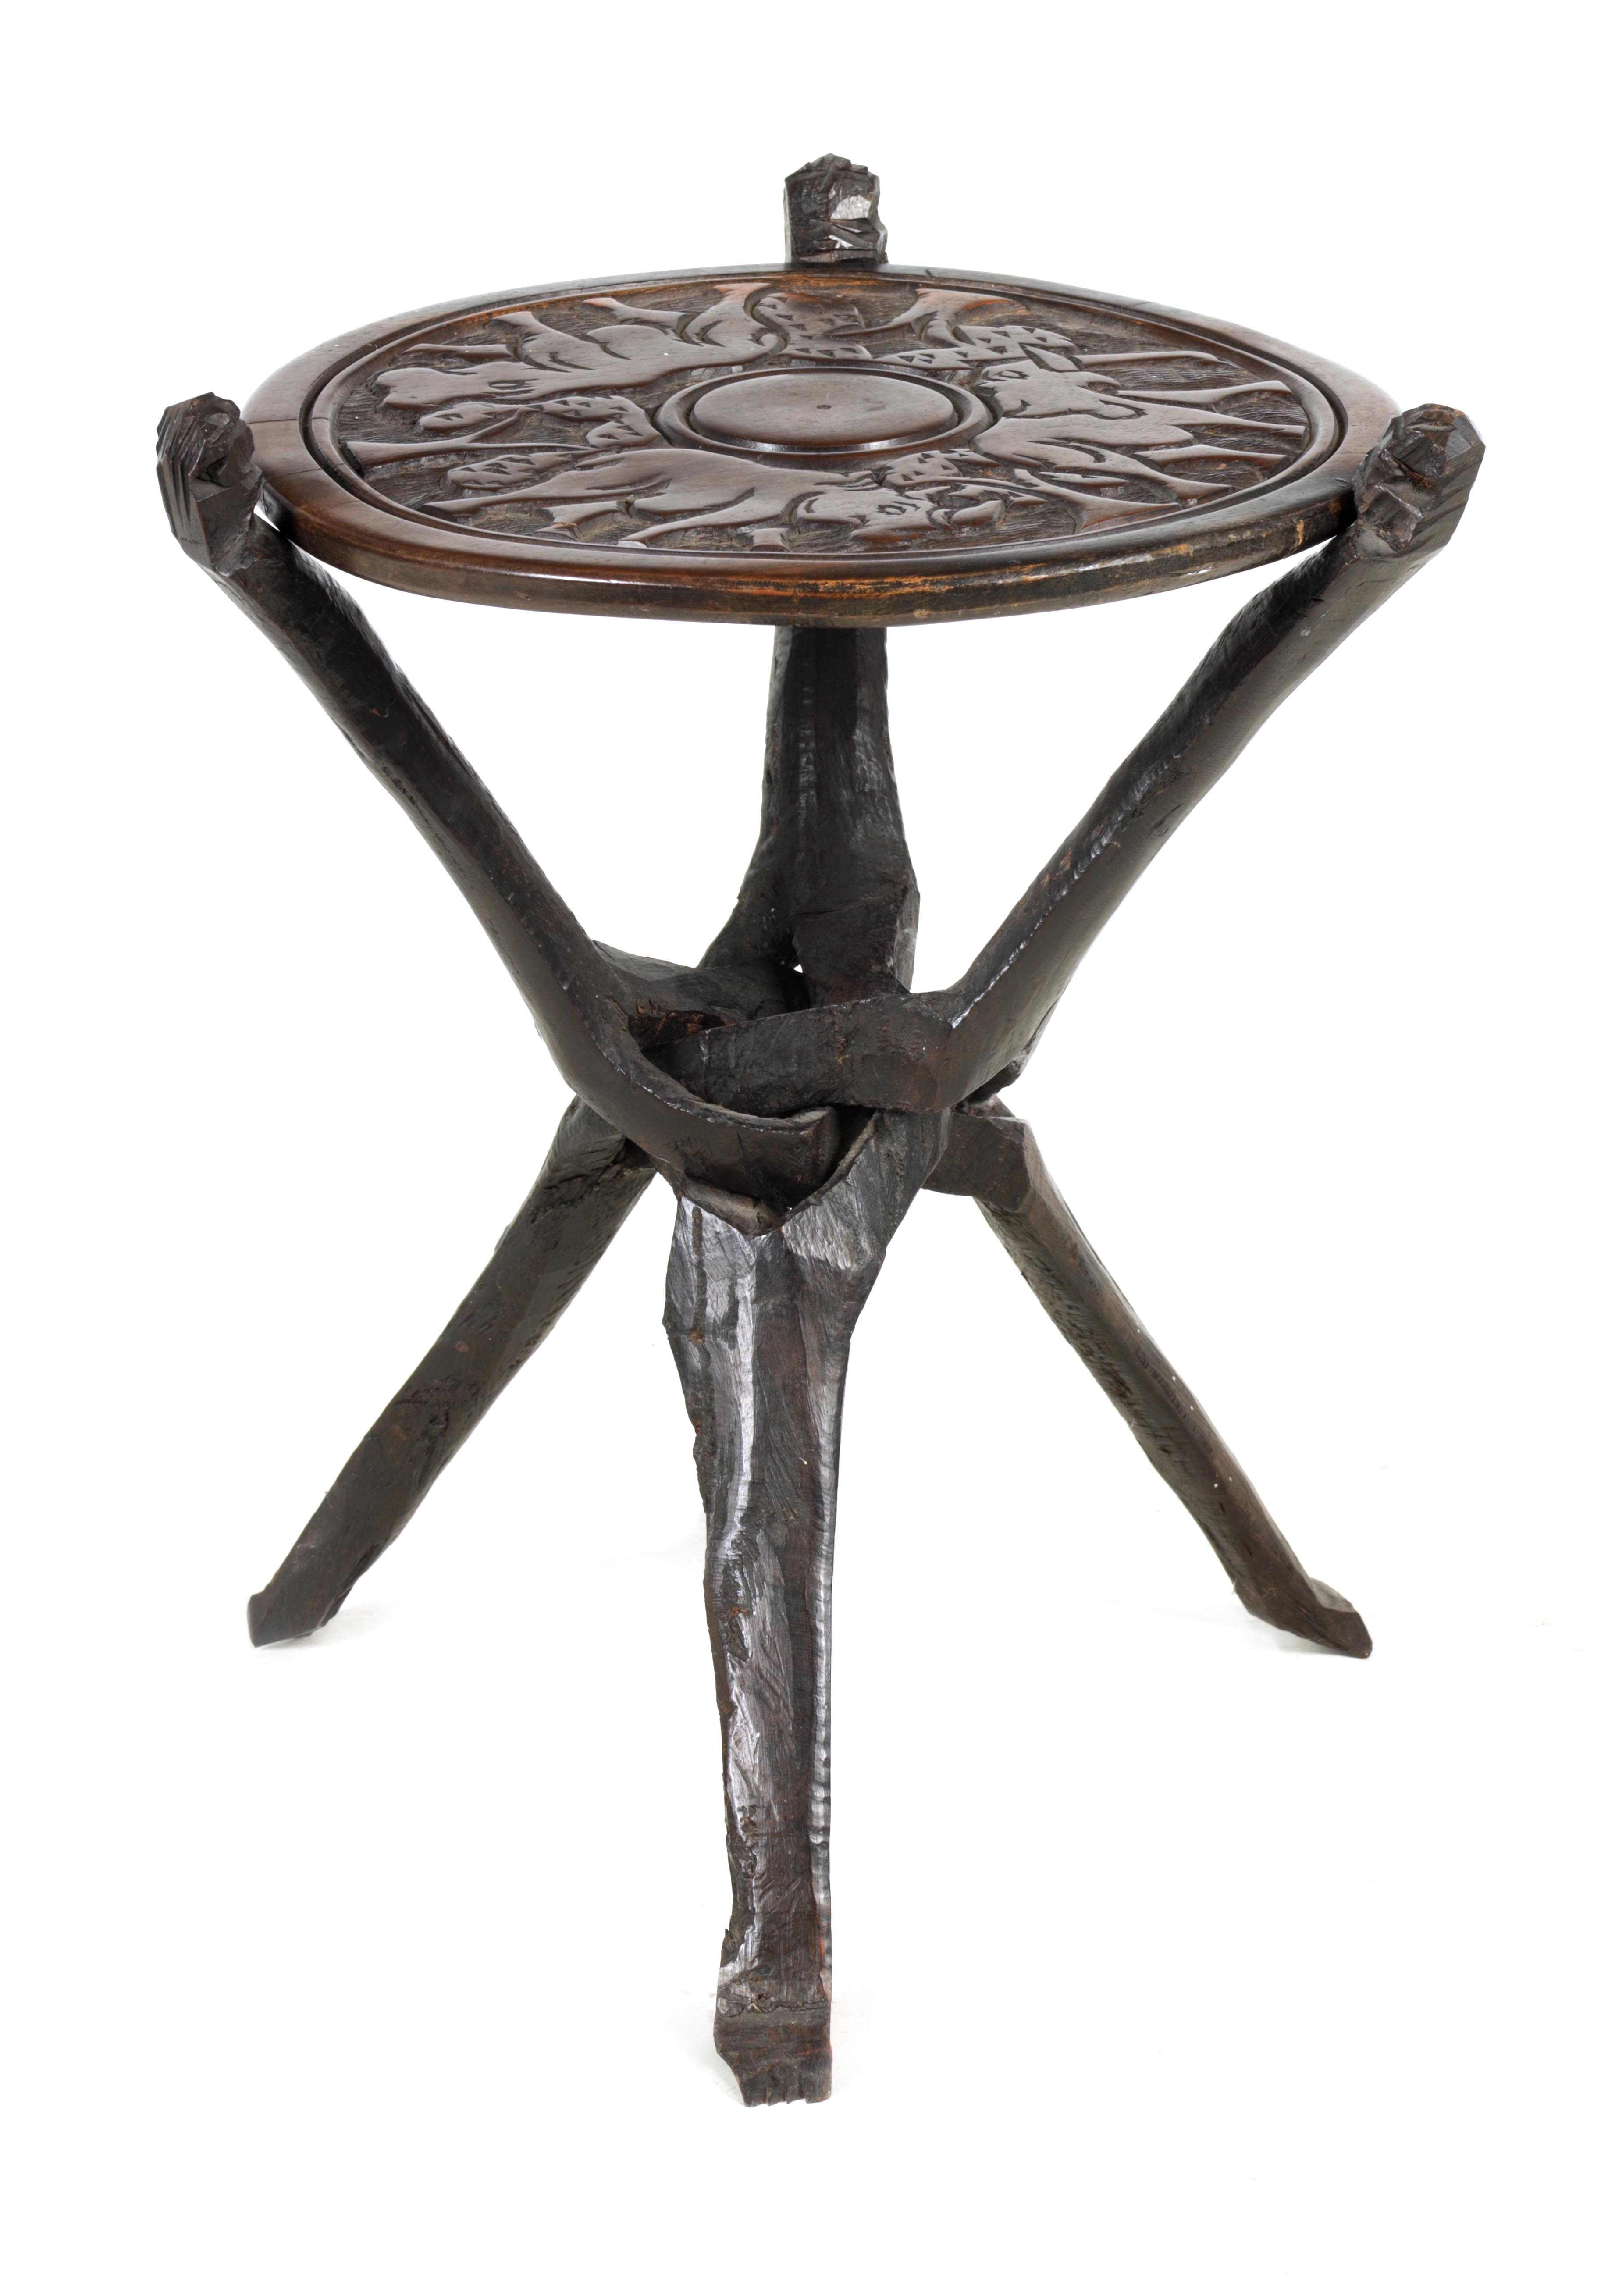 A LATE 19TH CENTURY AFRICAN HARDWOOD FOLDING TABLE the circular top relief carved with Rhinosorus